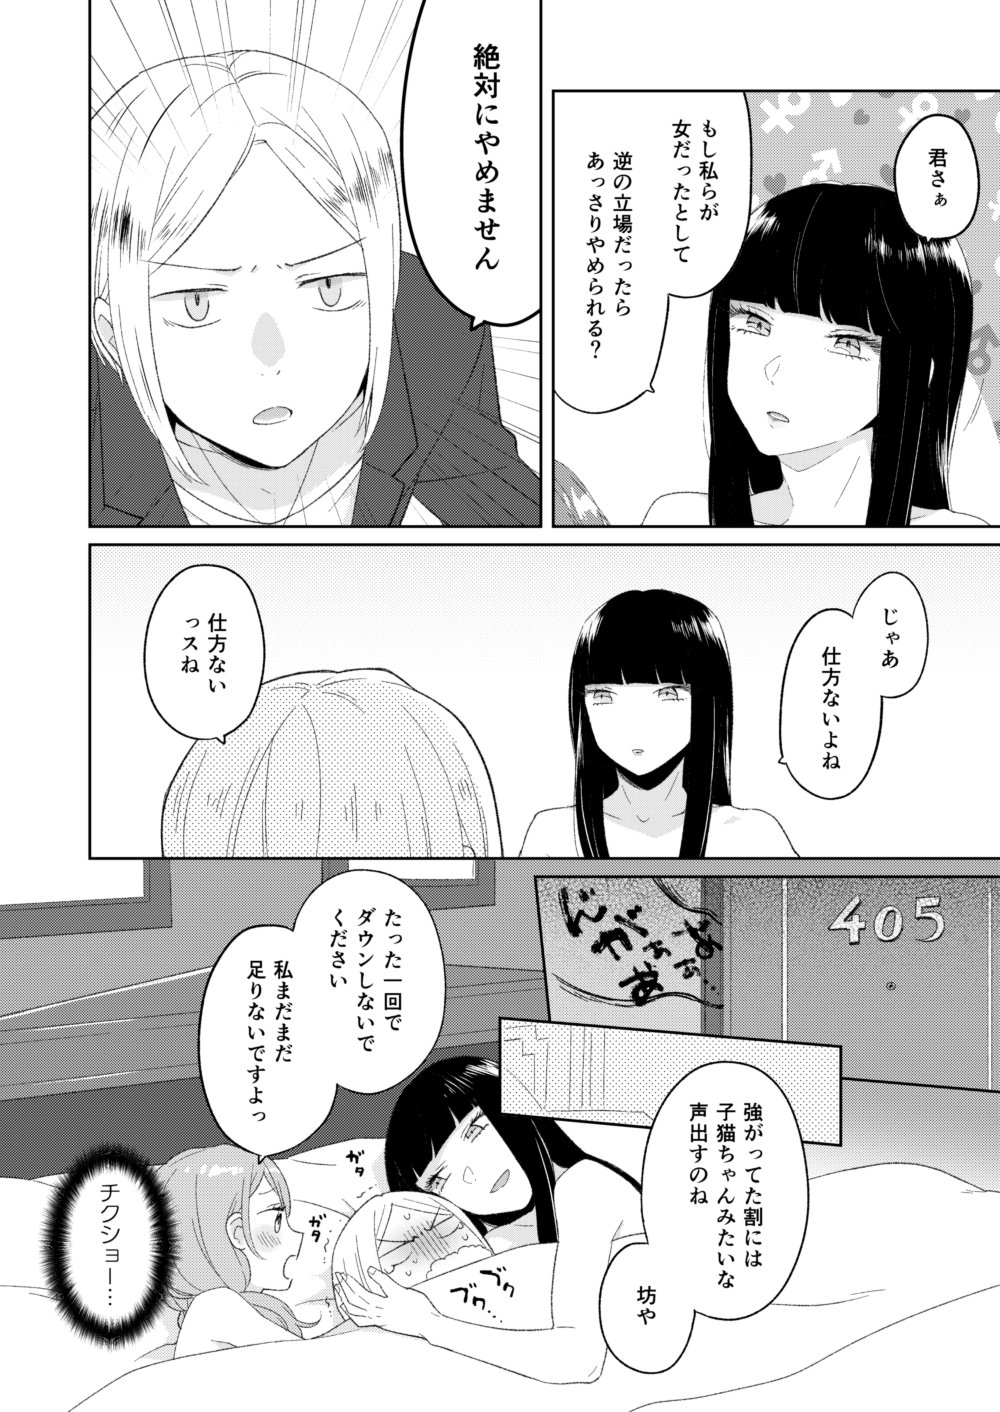 1girl aftersex bangs bed blunt_bangs comic eyebrows_visible_through_hair highres long_hair majoccoid monochrome original short_hair translation_request trap under_covers